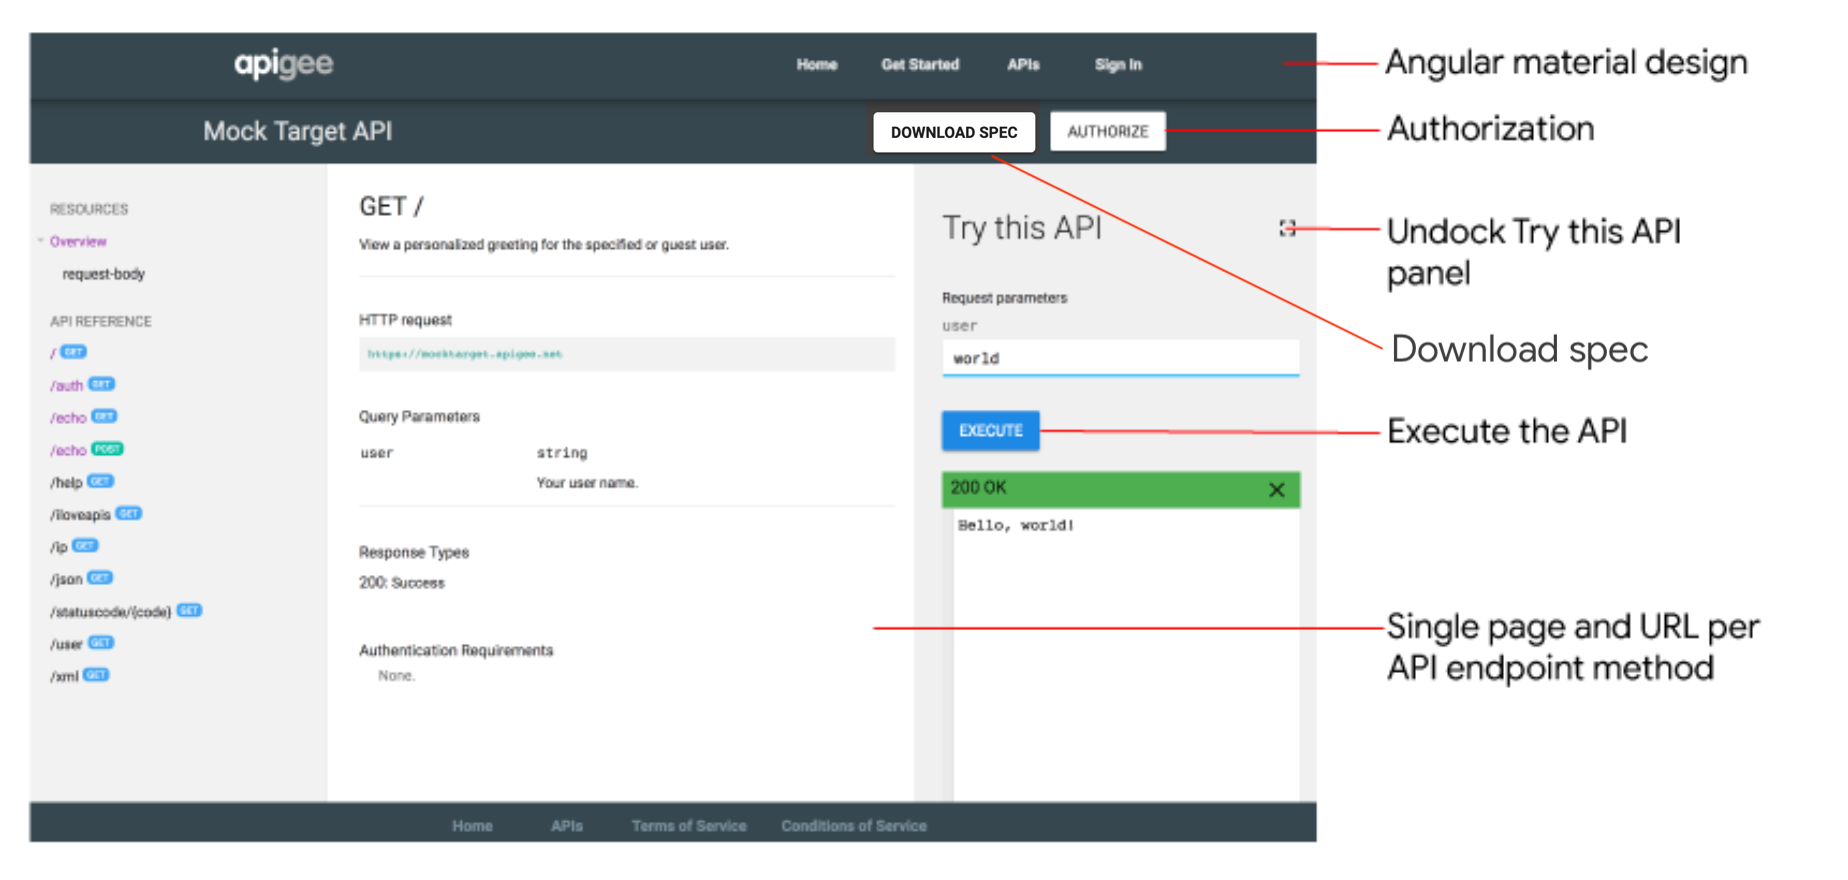 API reference documentation page with callouts that show how to authorize your API call, undock the Try this API panel, download the relevant spec, and execute the API.